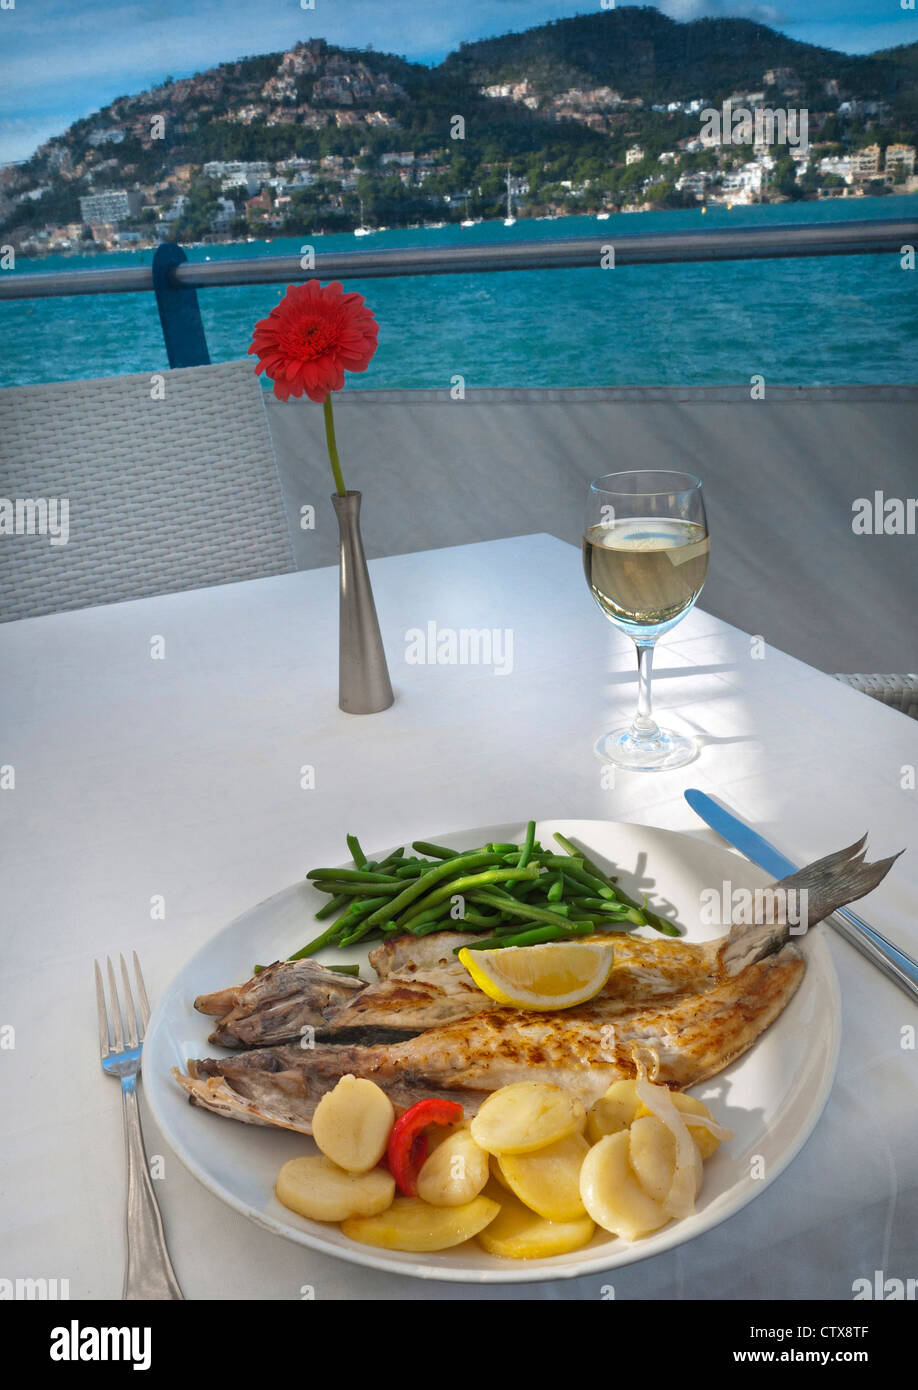 Simple restaurant table setting - Alfresco Restaurant Table Setting With Fresh Local Simple Rustic Fish Lunch In Puerto Andratx Mallorca Balearic Islands Spain